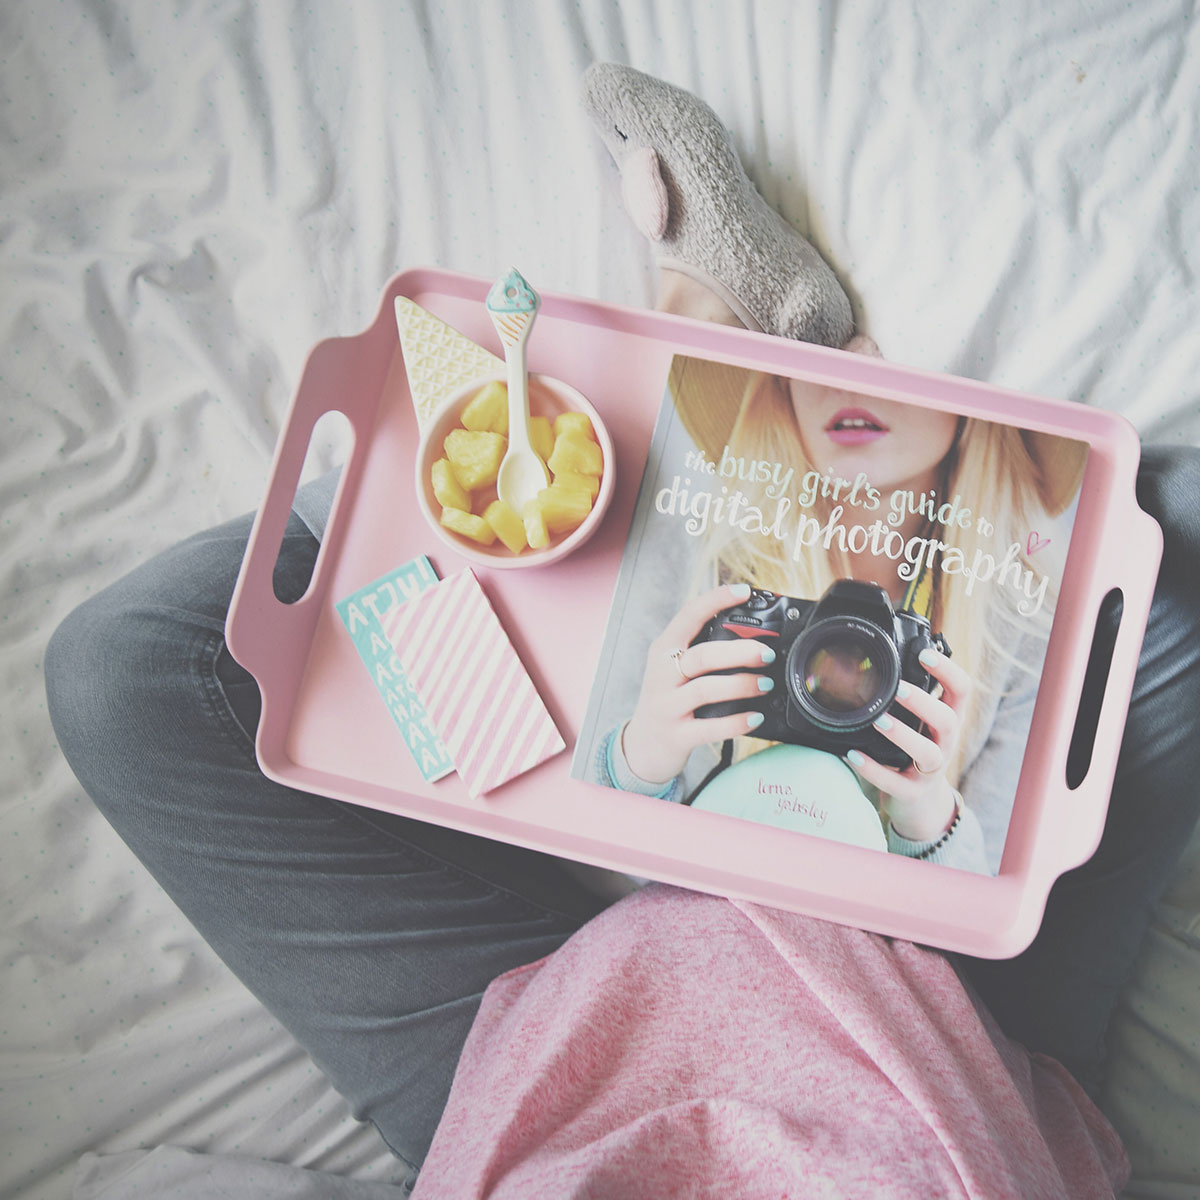 Our month in insta-snaps; June 2016 - Pregnant Mummy relaxing on bed reading photography book and drinking tea on pink Tiger tray